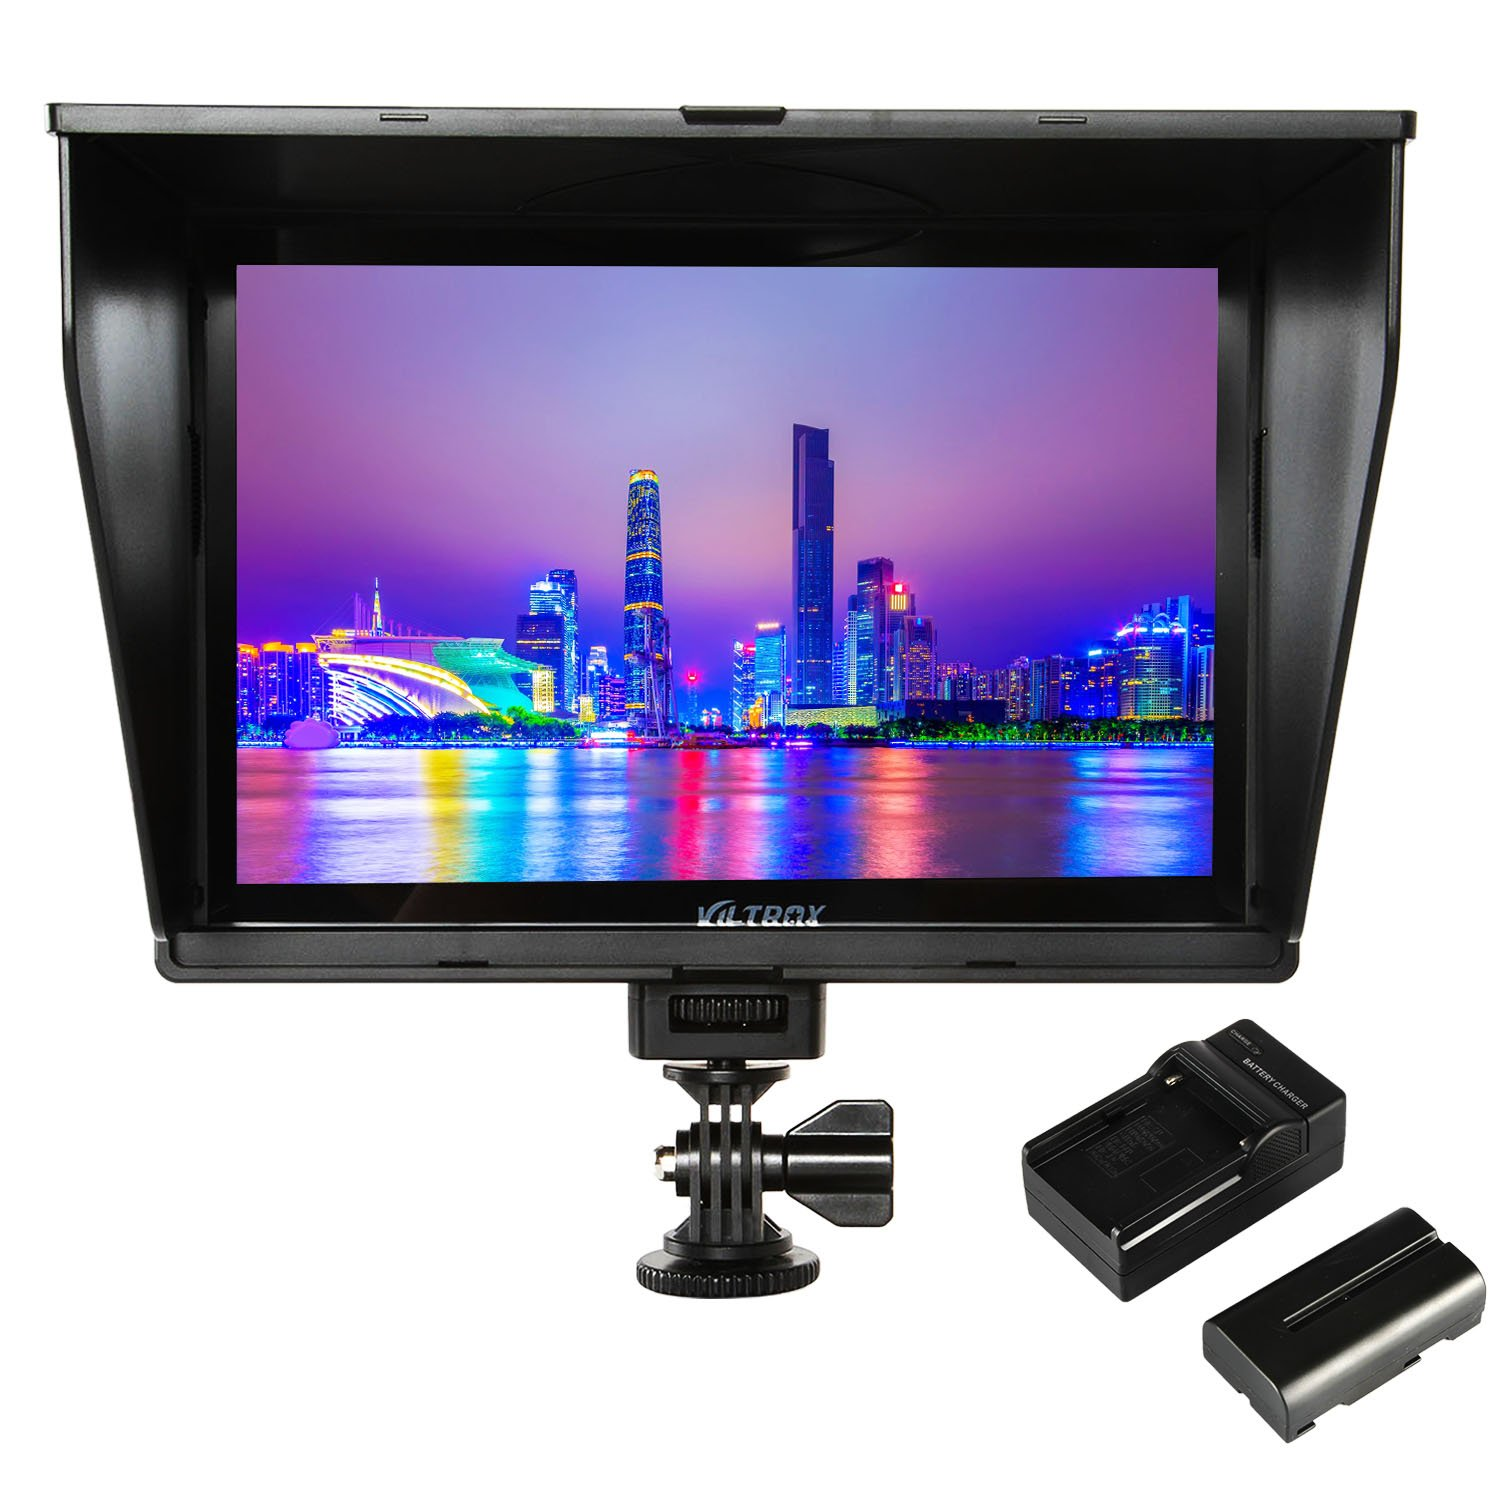 VILTROX DC-90HD 4K HDMI Monitor Full HD 1920x1200 IPS 8.9'' Clip-on LCD Camera Video Monitor Display HDMI AV Input for Canon Nikon DSLR BMPCC, Battery with Charger(Included) ... by VILTROX (Image #1)